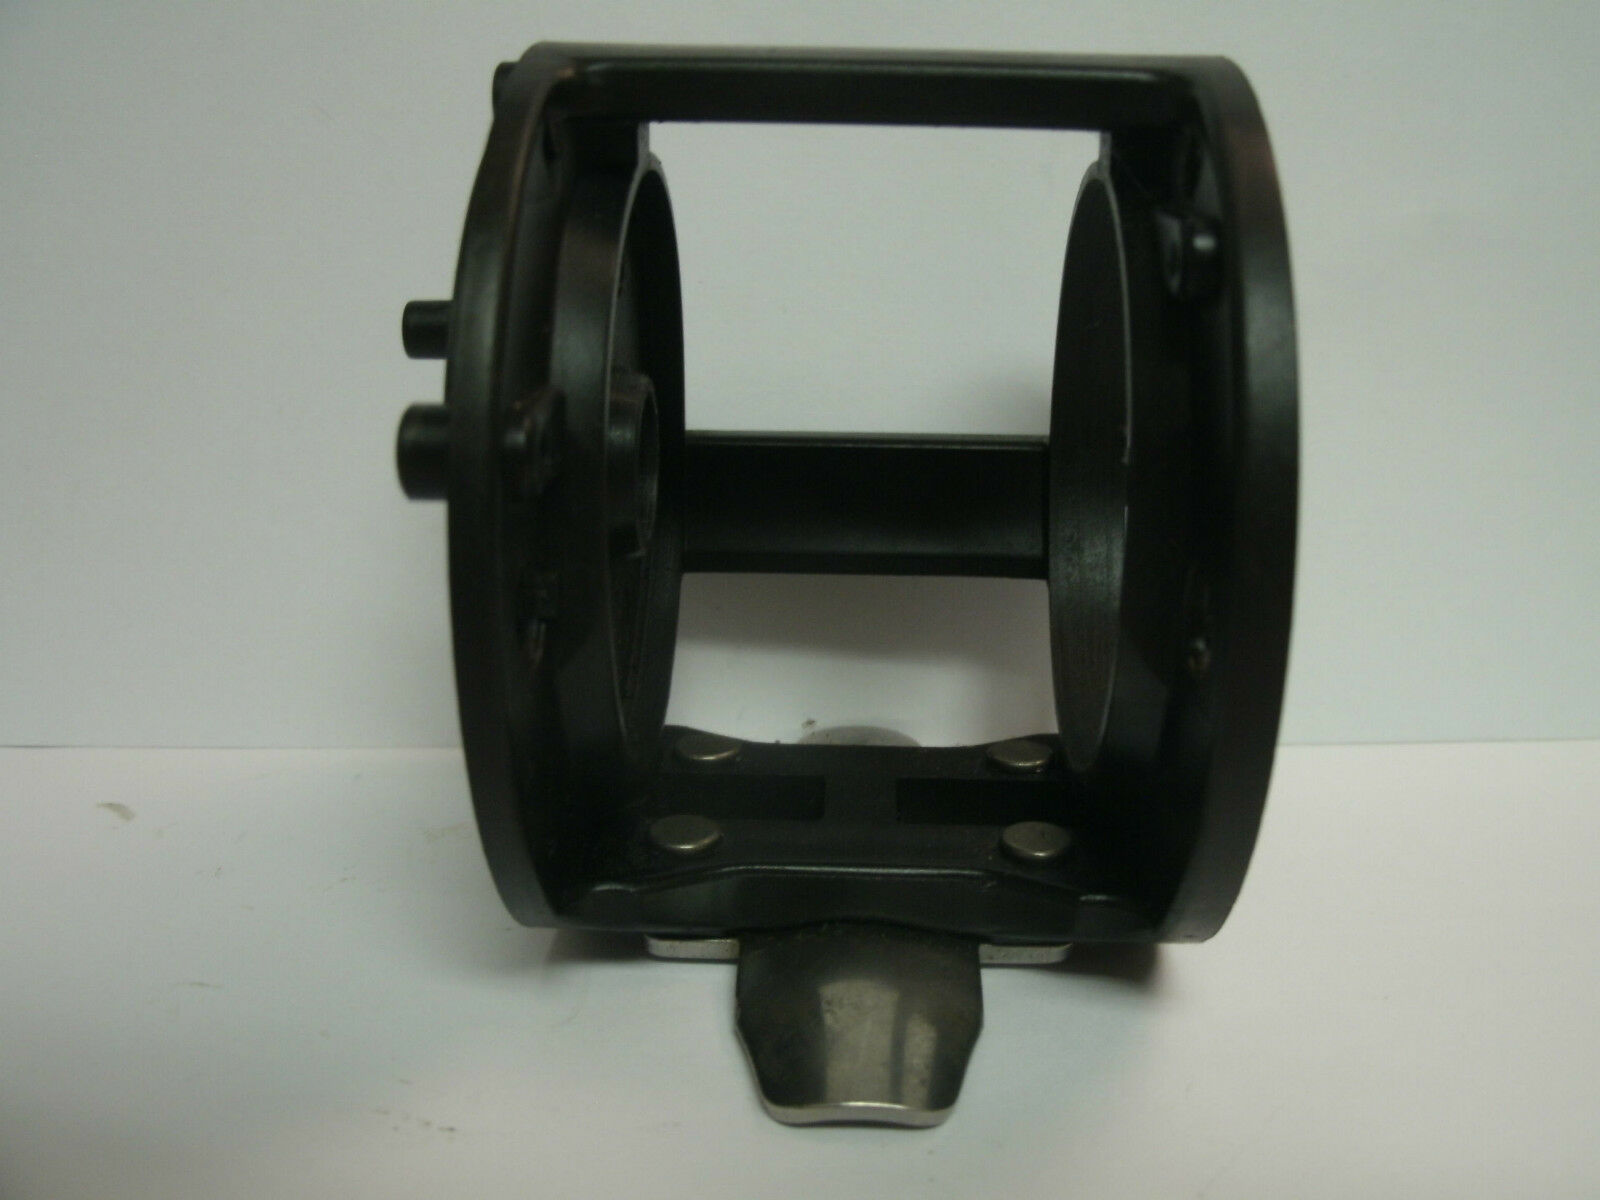 USED SHIMANO BAITCASTING REEL PART - TR 100 - Frame - Lot A